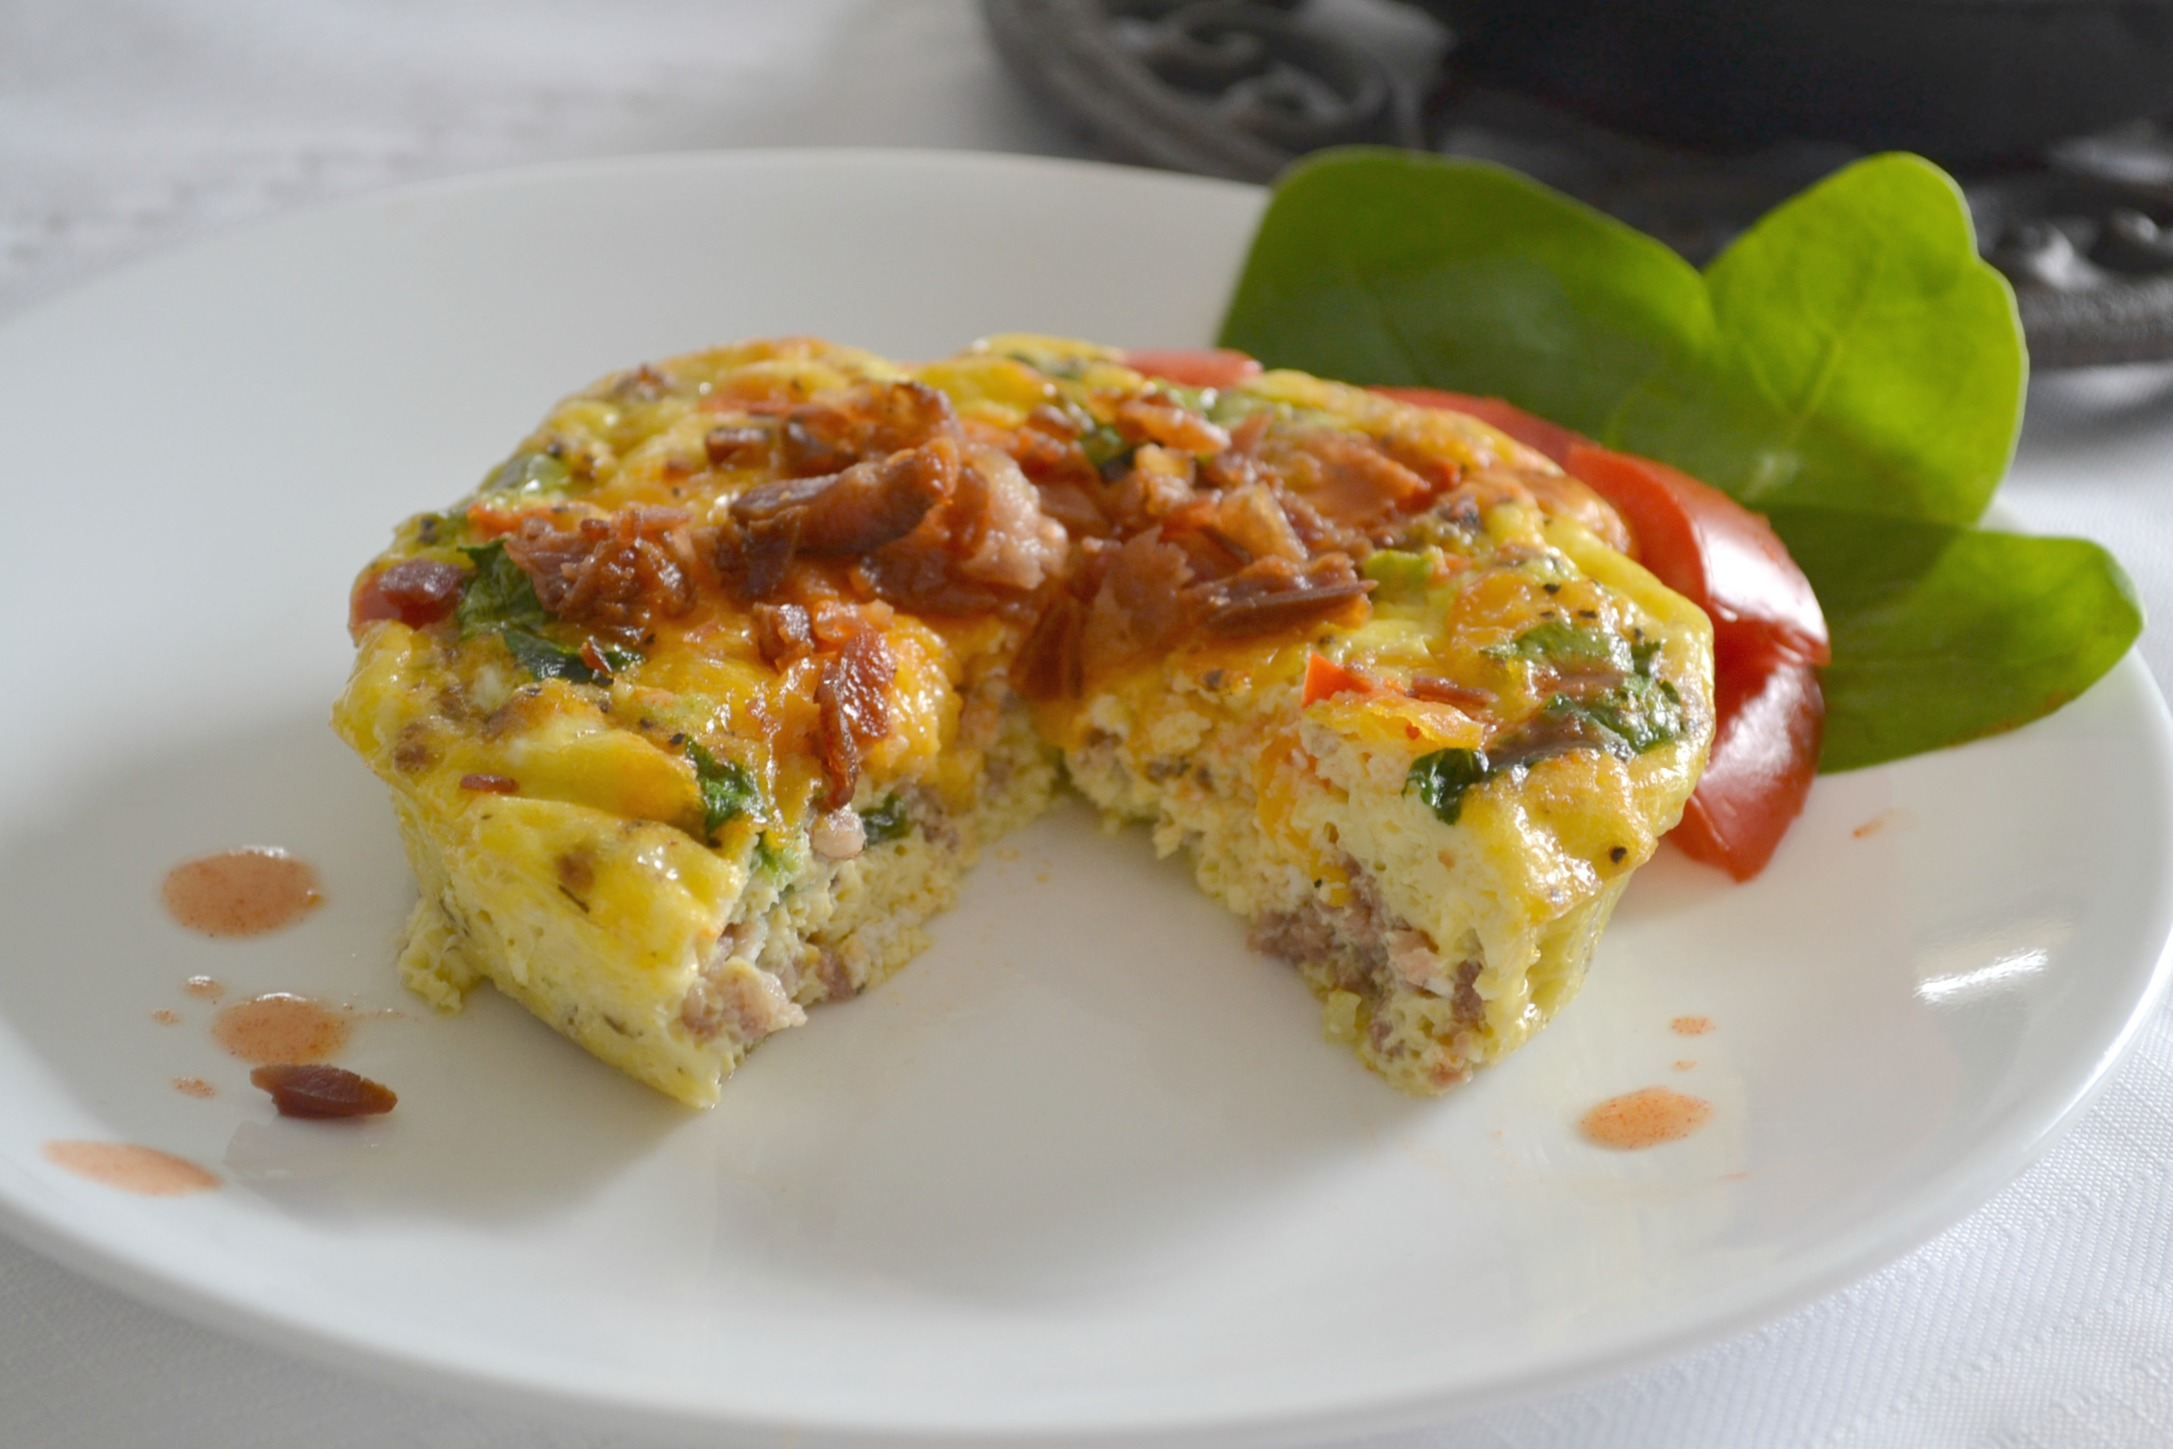 Mini Frittatas loaded with bacon ham, sausage, eggs, cheese, and veggies baked in a mini cast iron skillet.